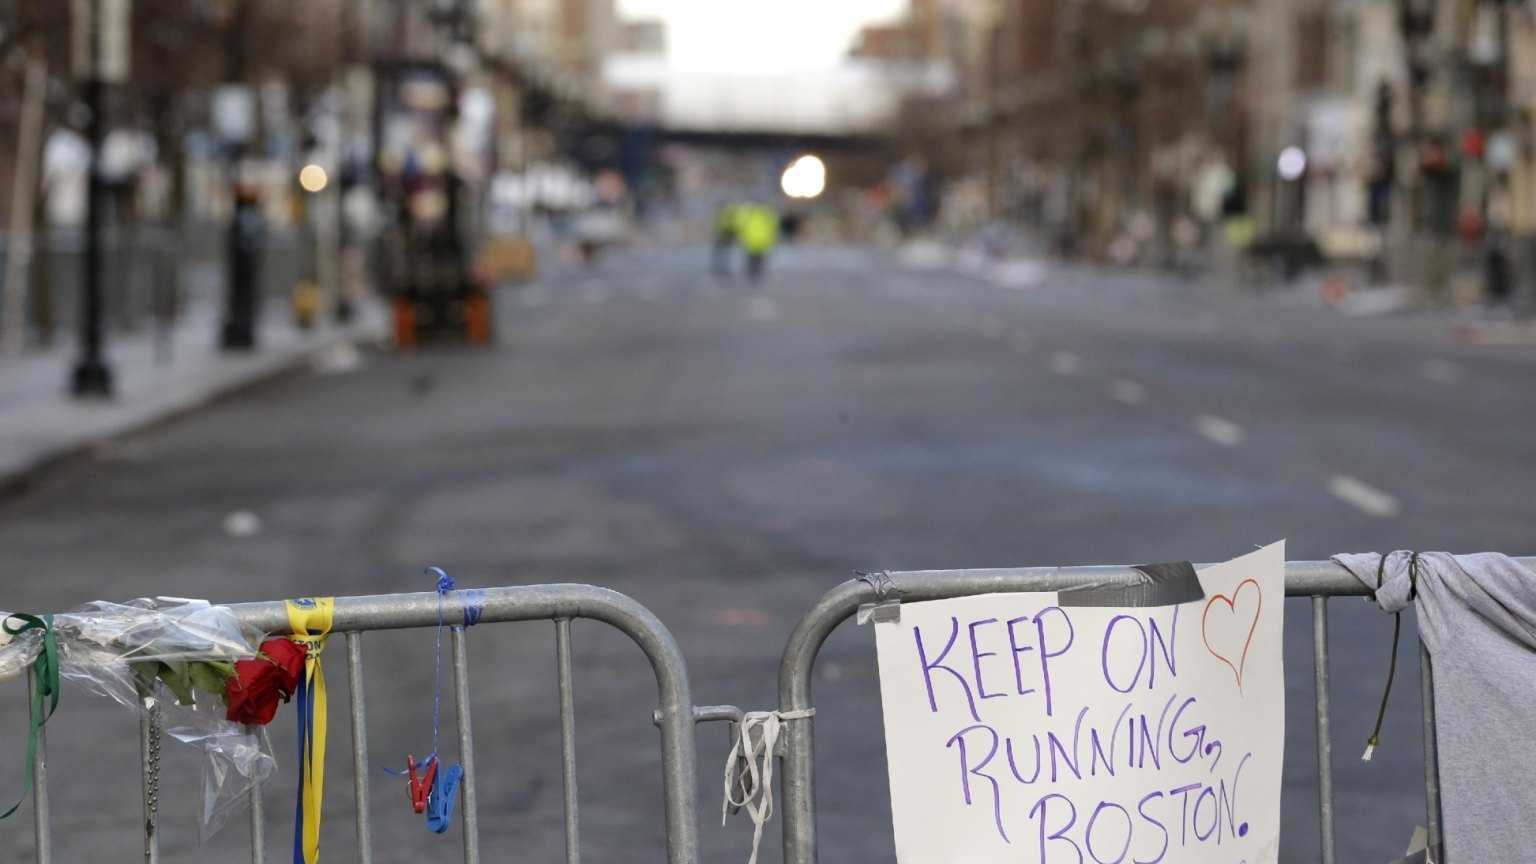 A sign hangs from a barricade on Boylston Street near the finish line of the Boston Marathon.